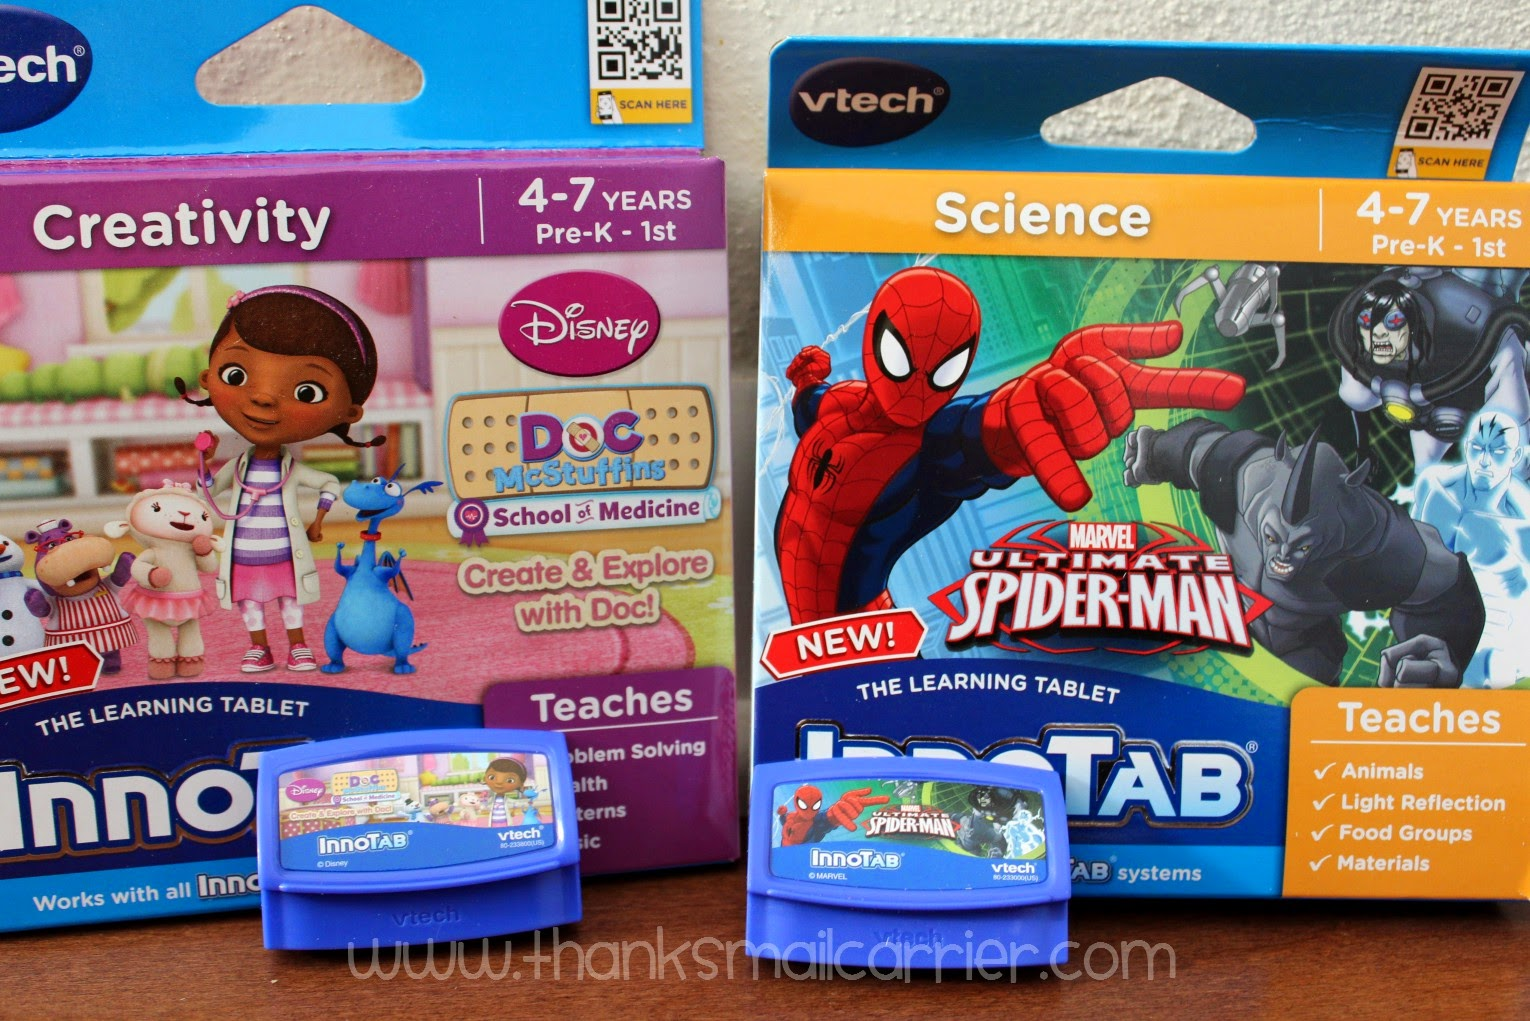 new VTech Innotab cartridges